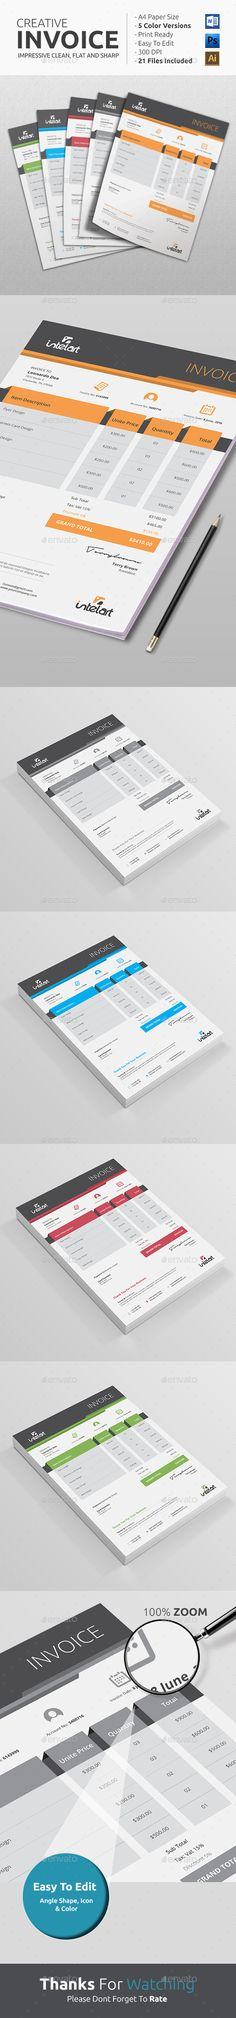 Invoice Excel Invoice design, Proposal templates and Portfolio - how to do an invoice on excel